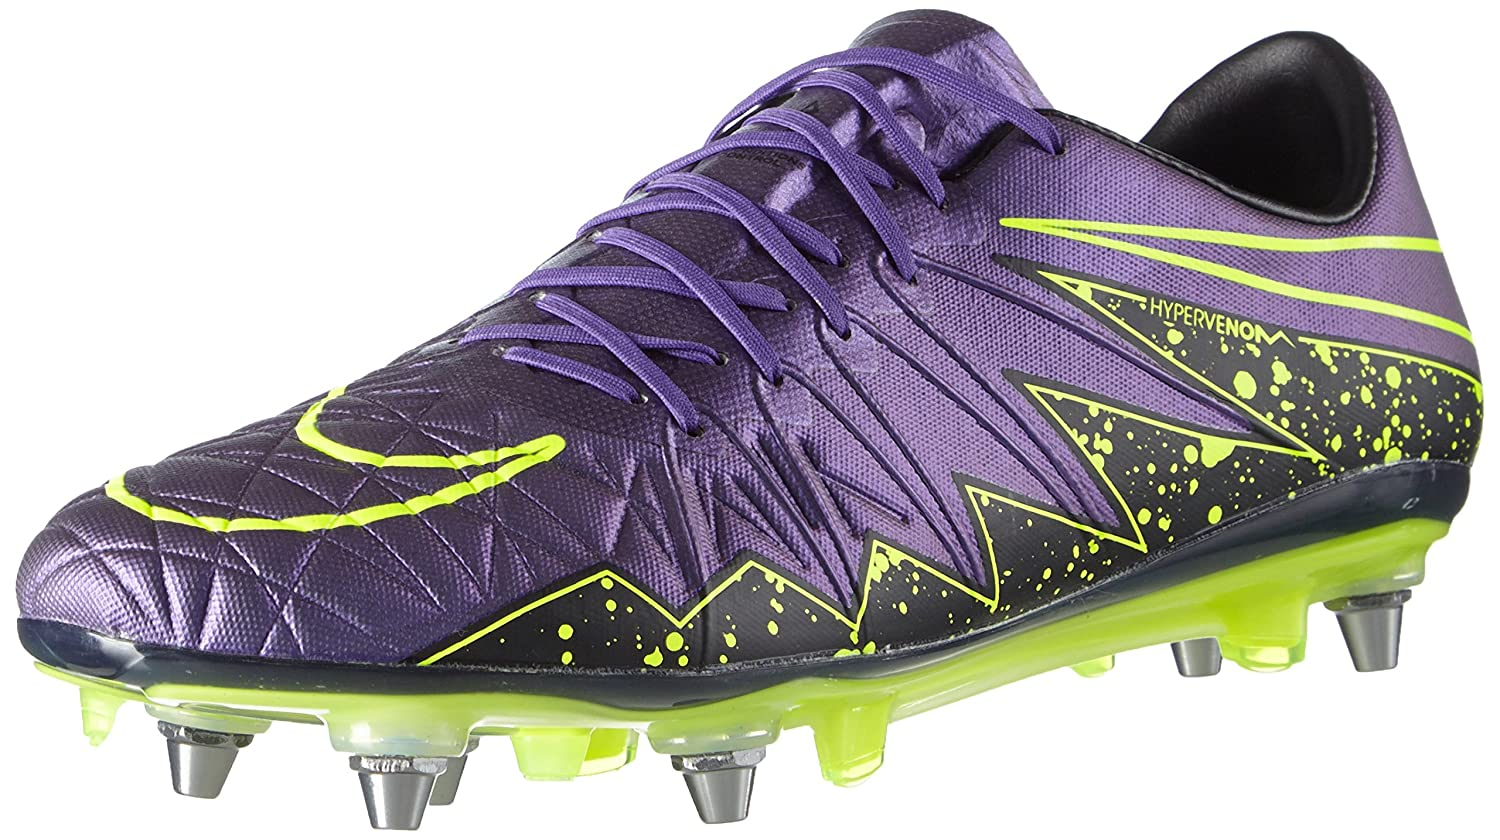 huge selection of 8fd76 2237b Nike Men's Hypervenom Phinish SG-PRO Football Boots, Purple ...